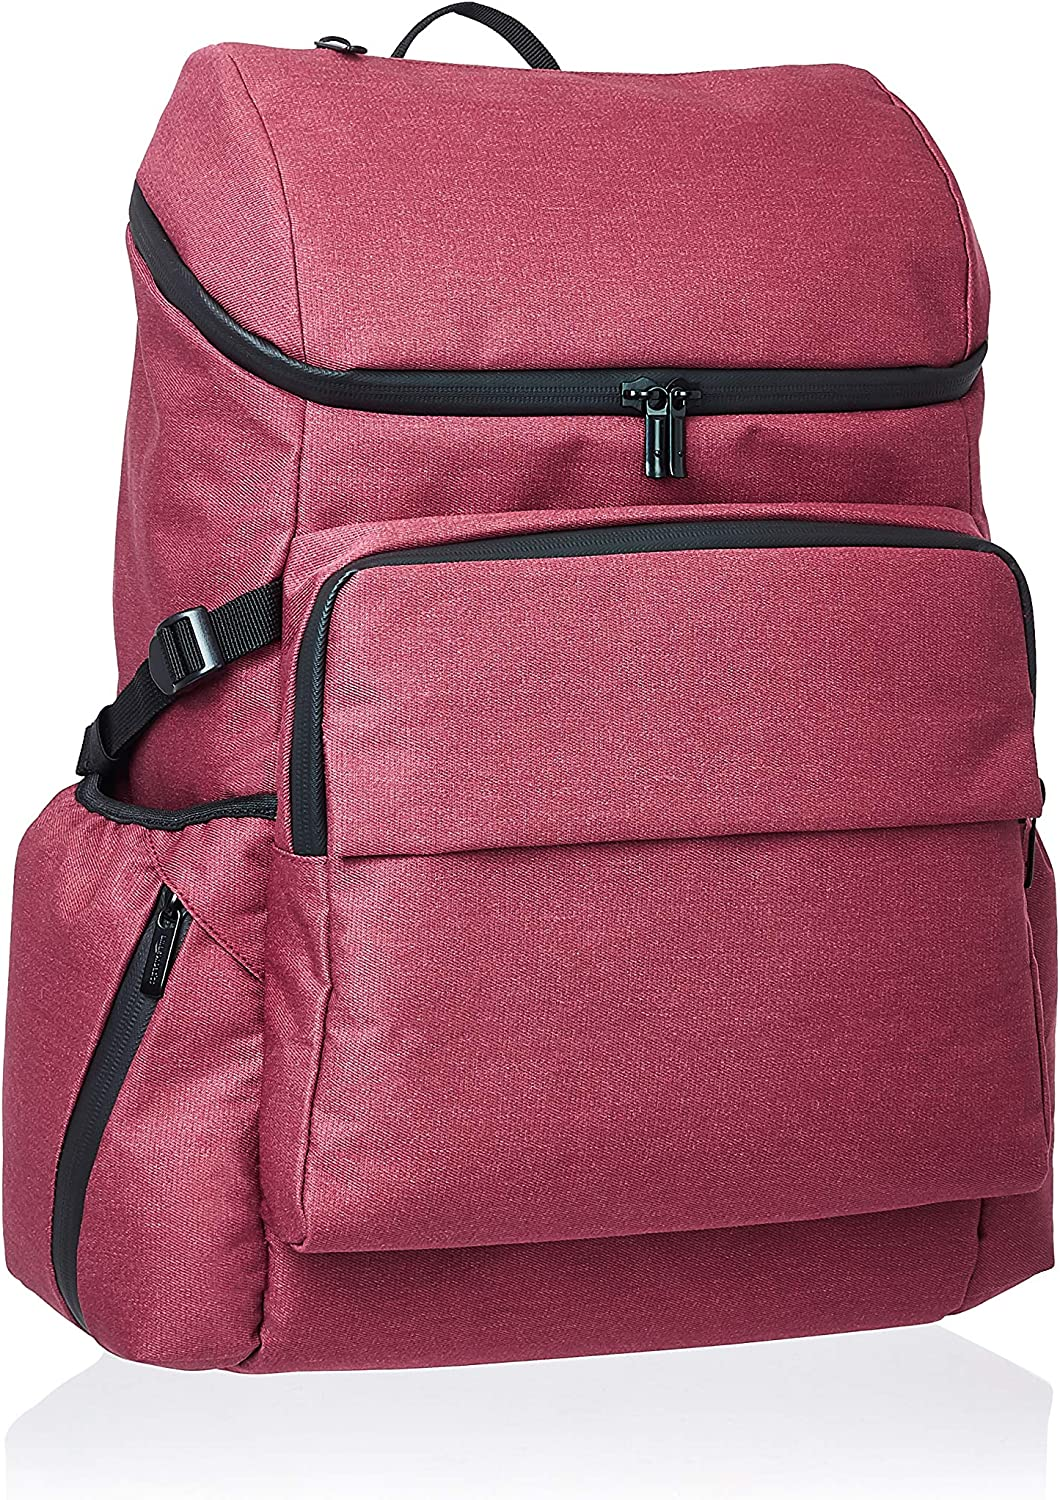 AmazonBasics Urban Backpack for Laptops up to 15-Inches - Maroon